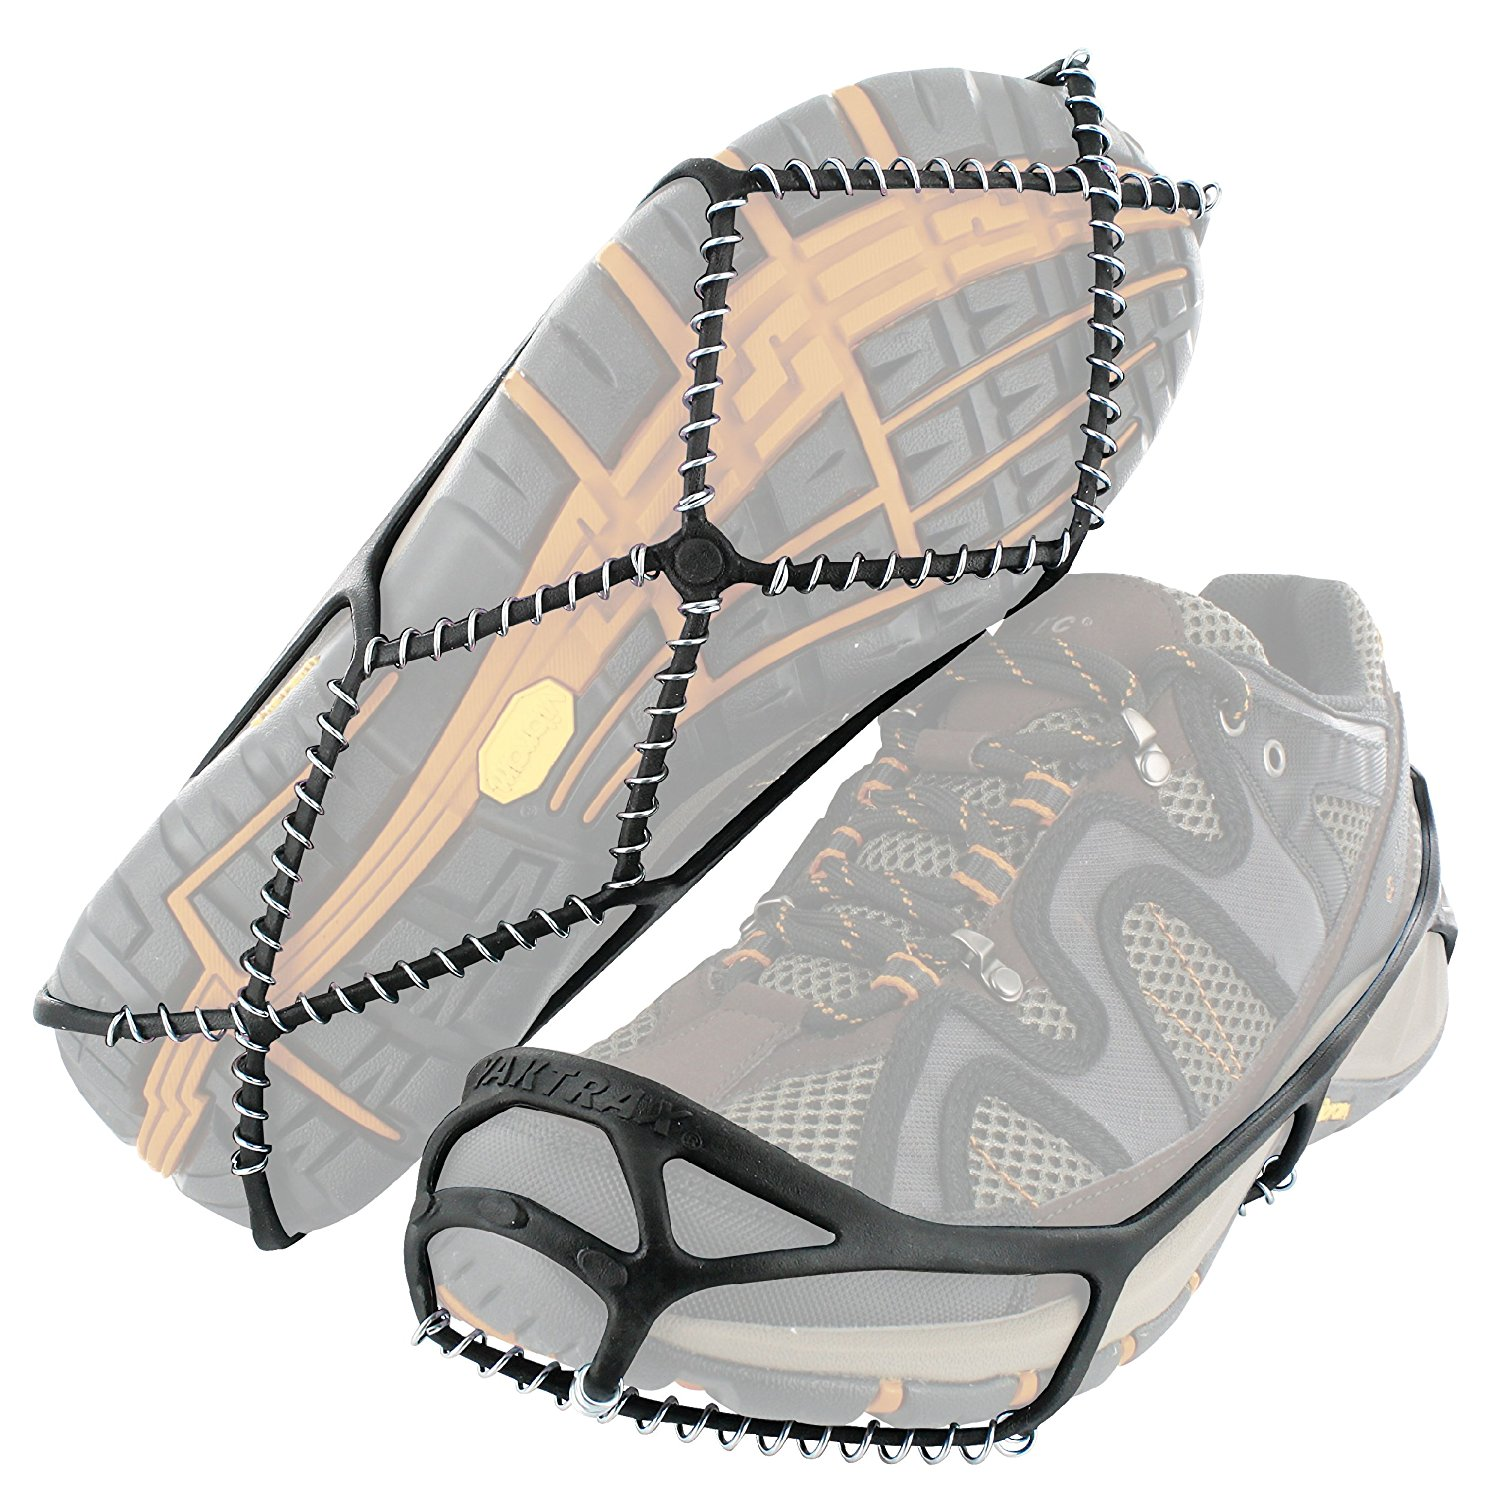 Walker Traction Cleats for Snow and Ice, Black, Medium, plastic By YakTrax